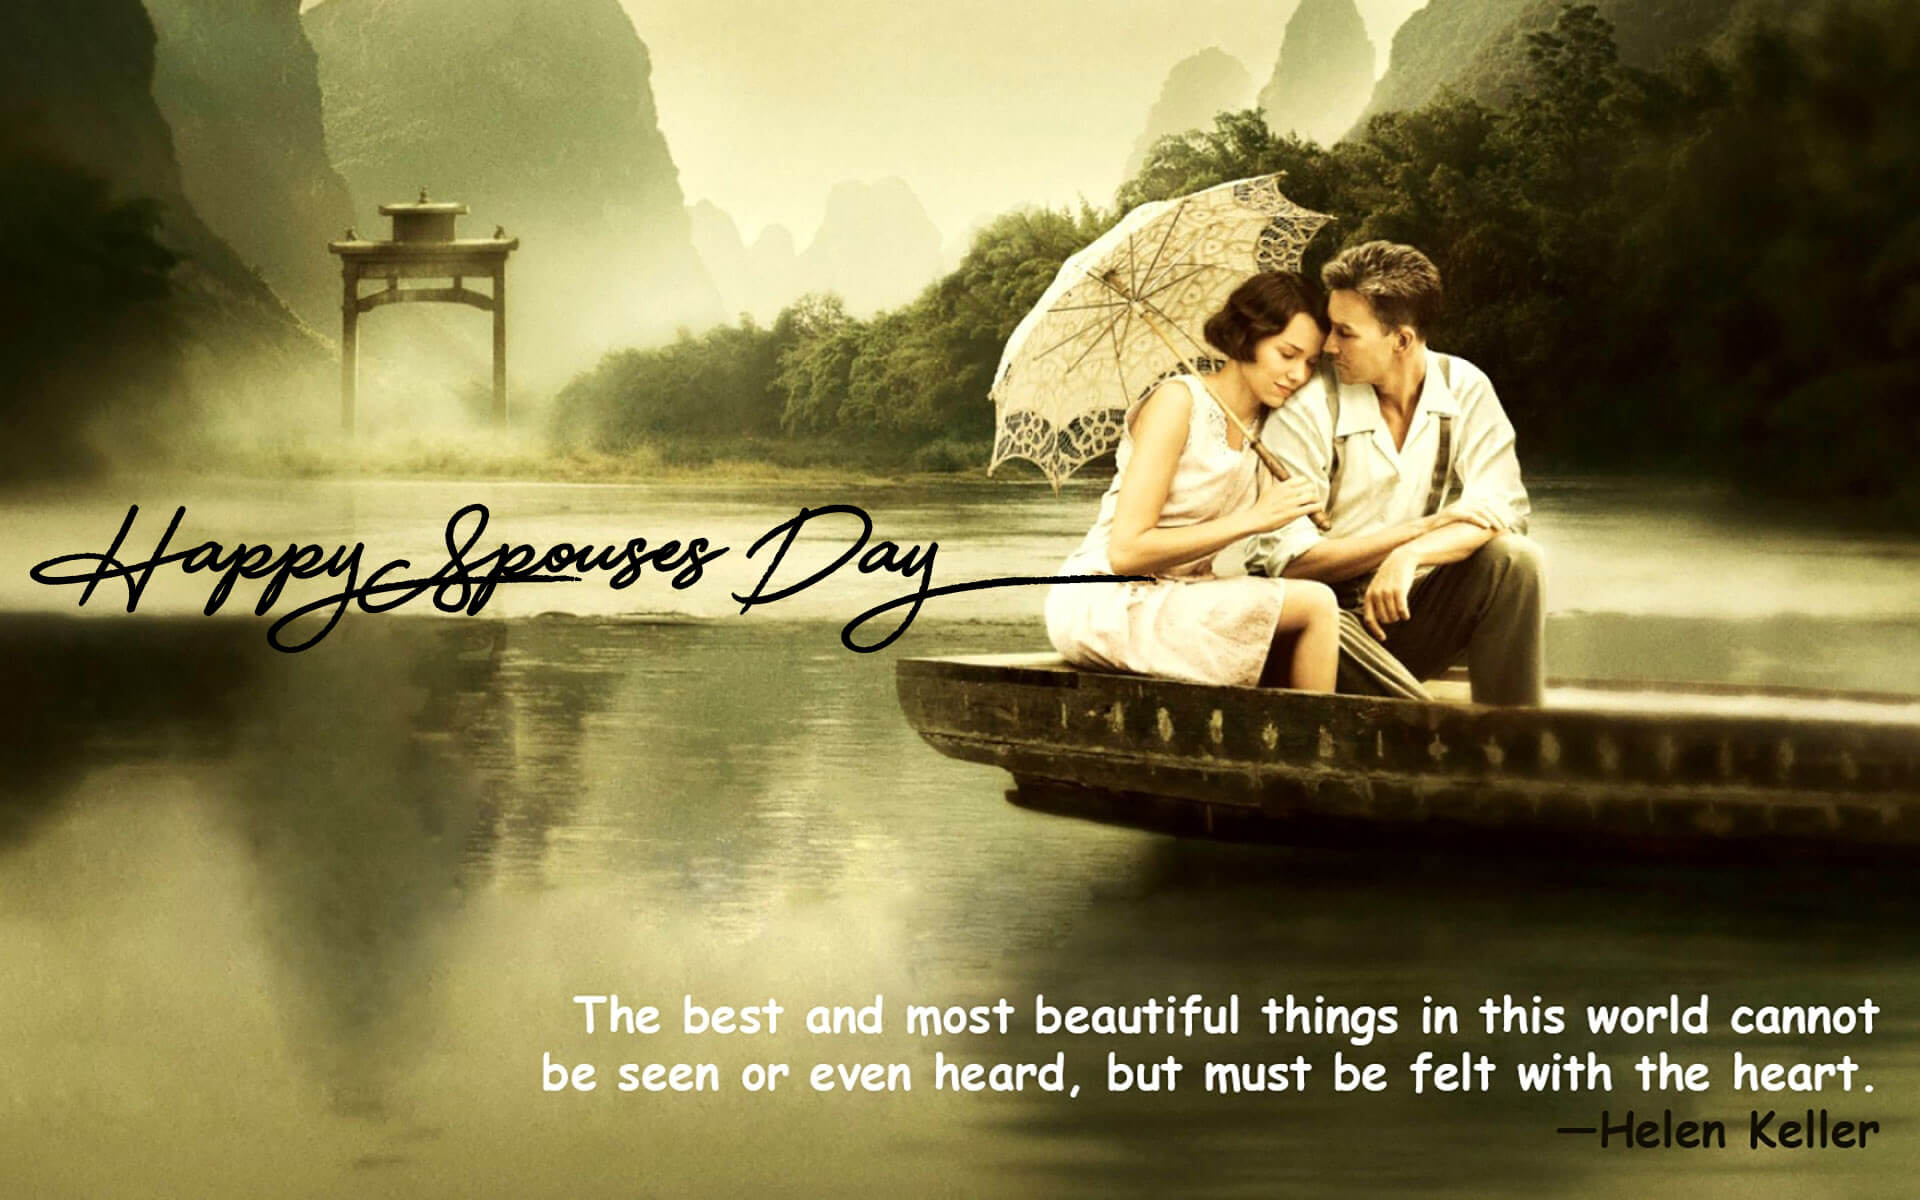 happy spouses day wishes greetings romantic image quotes hd wallpaper